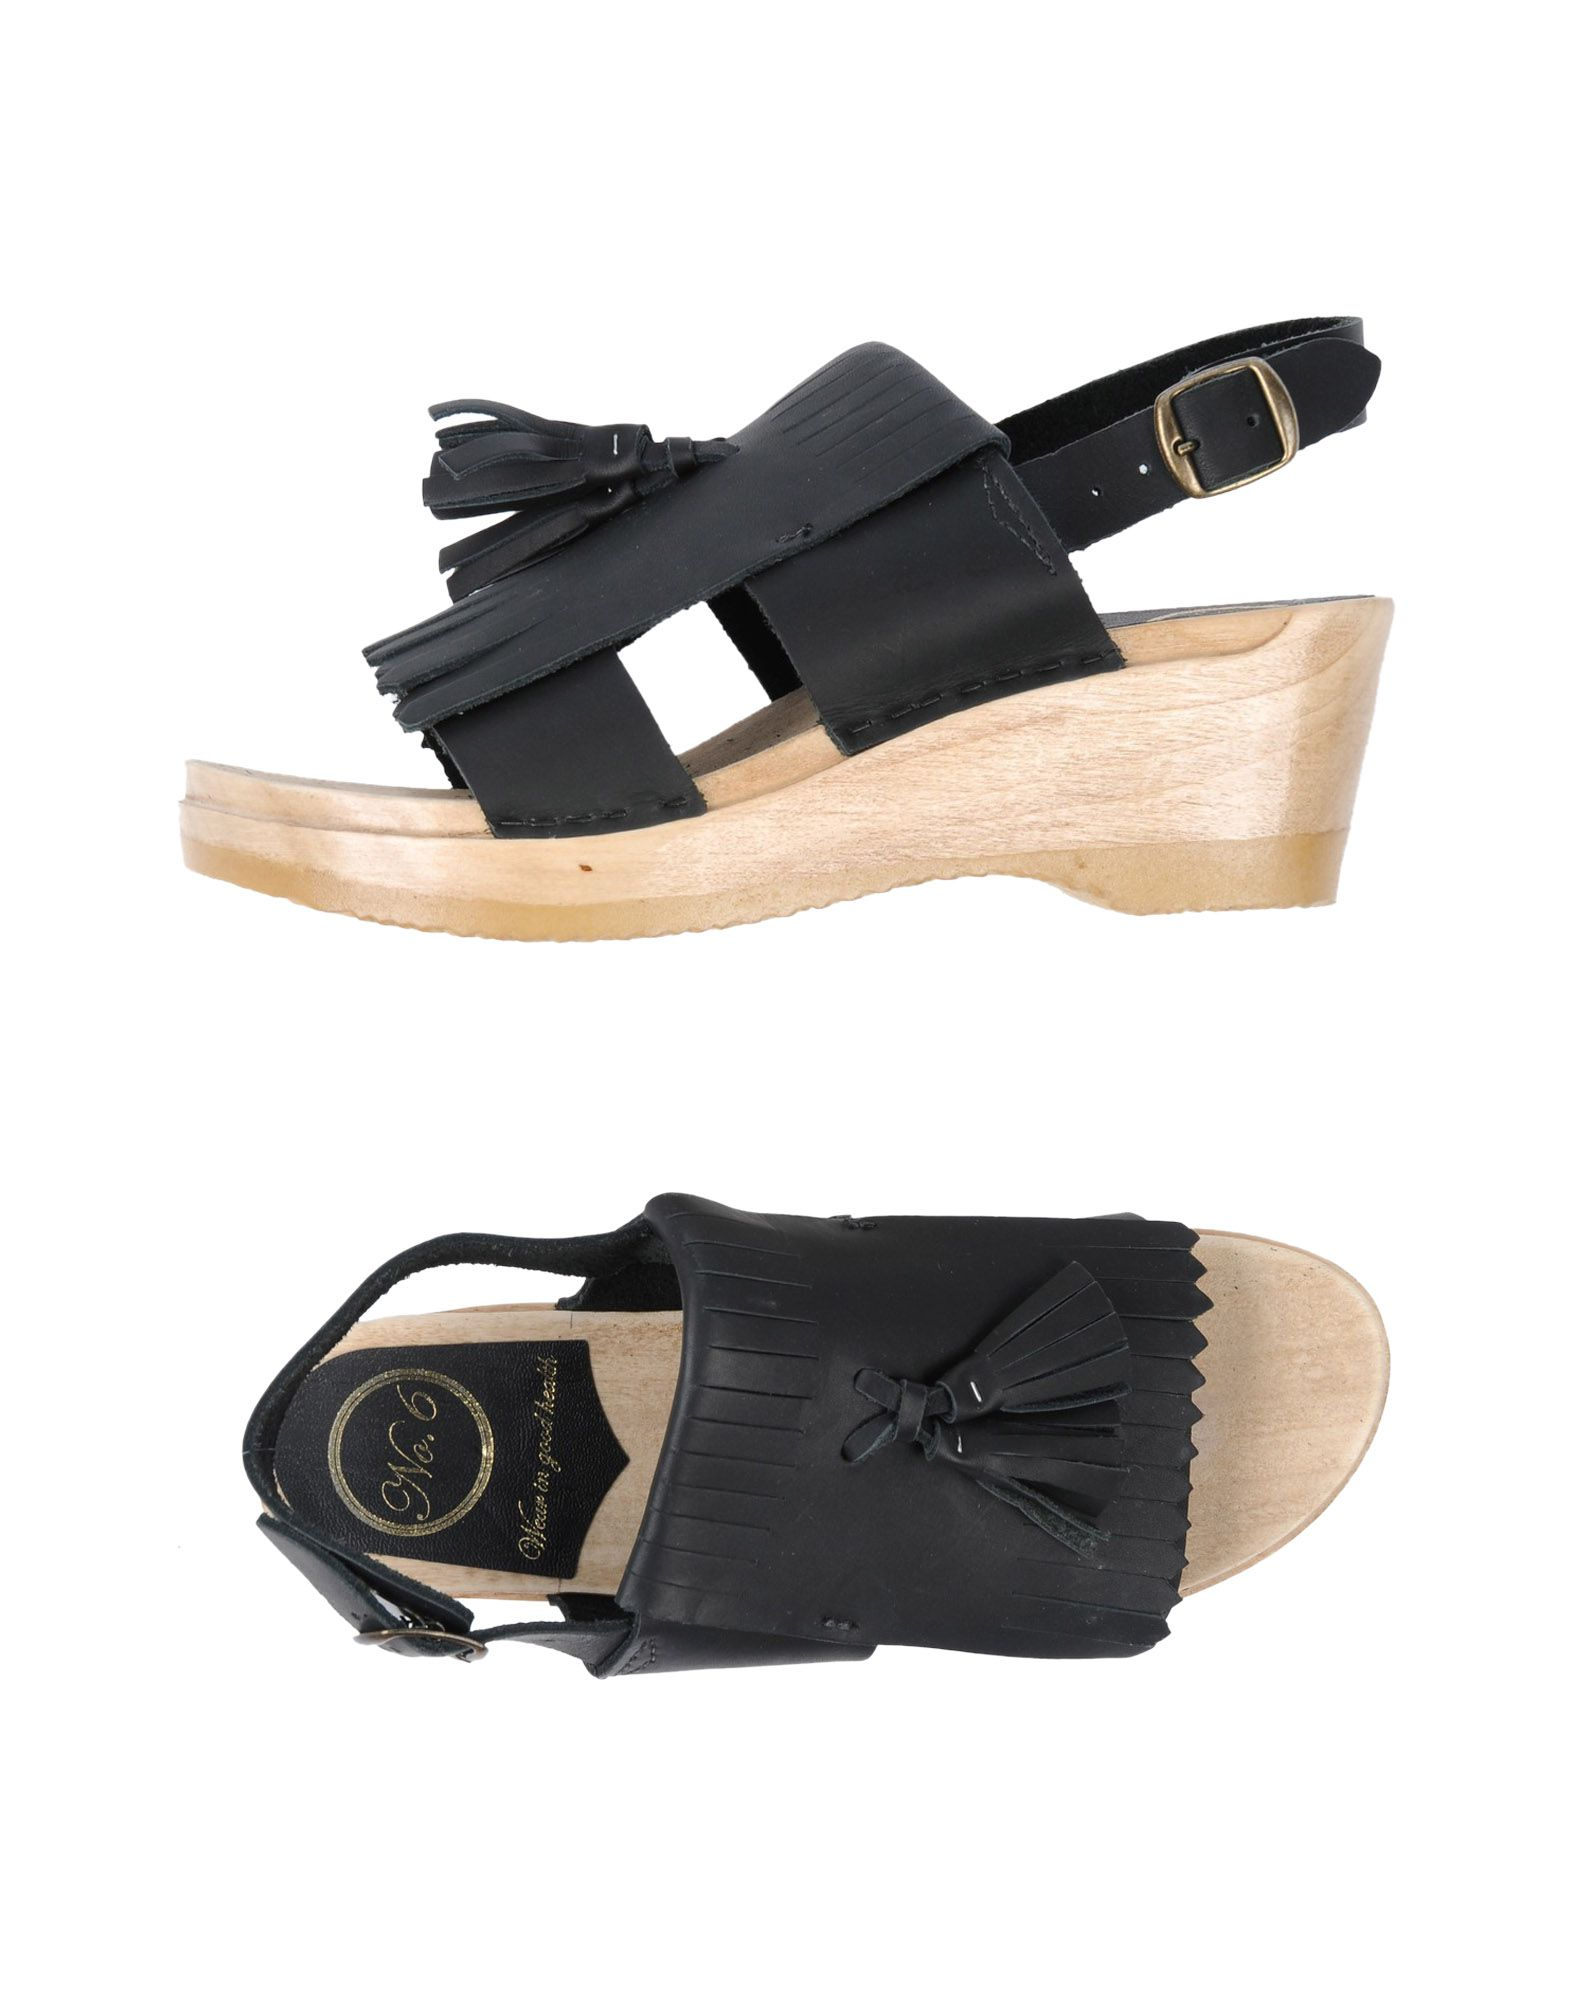 NO. 6 STORE Sandals in Black